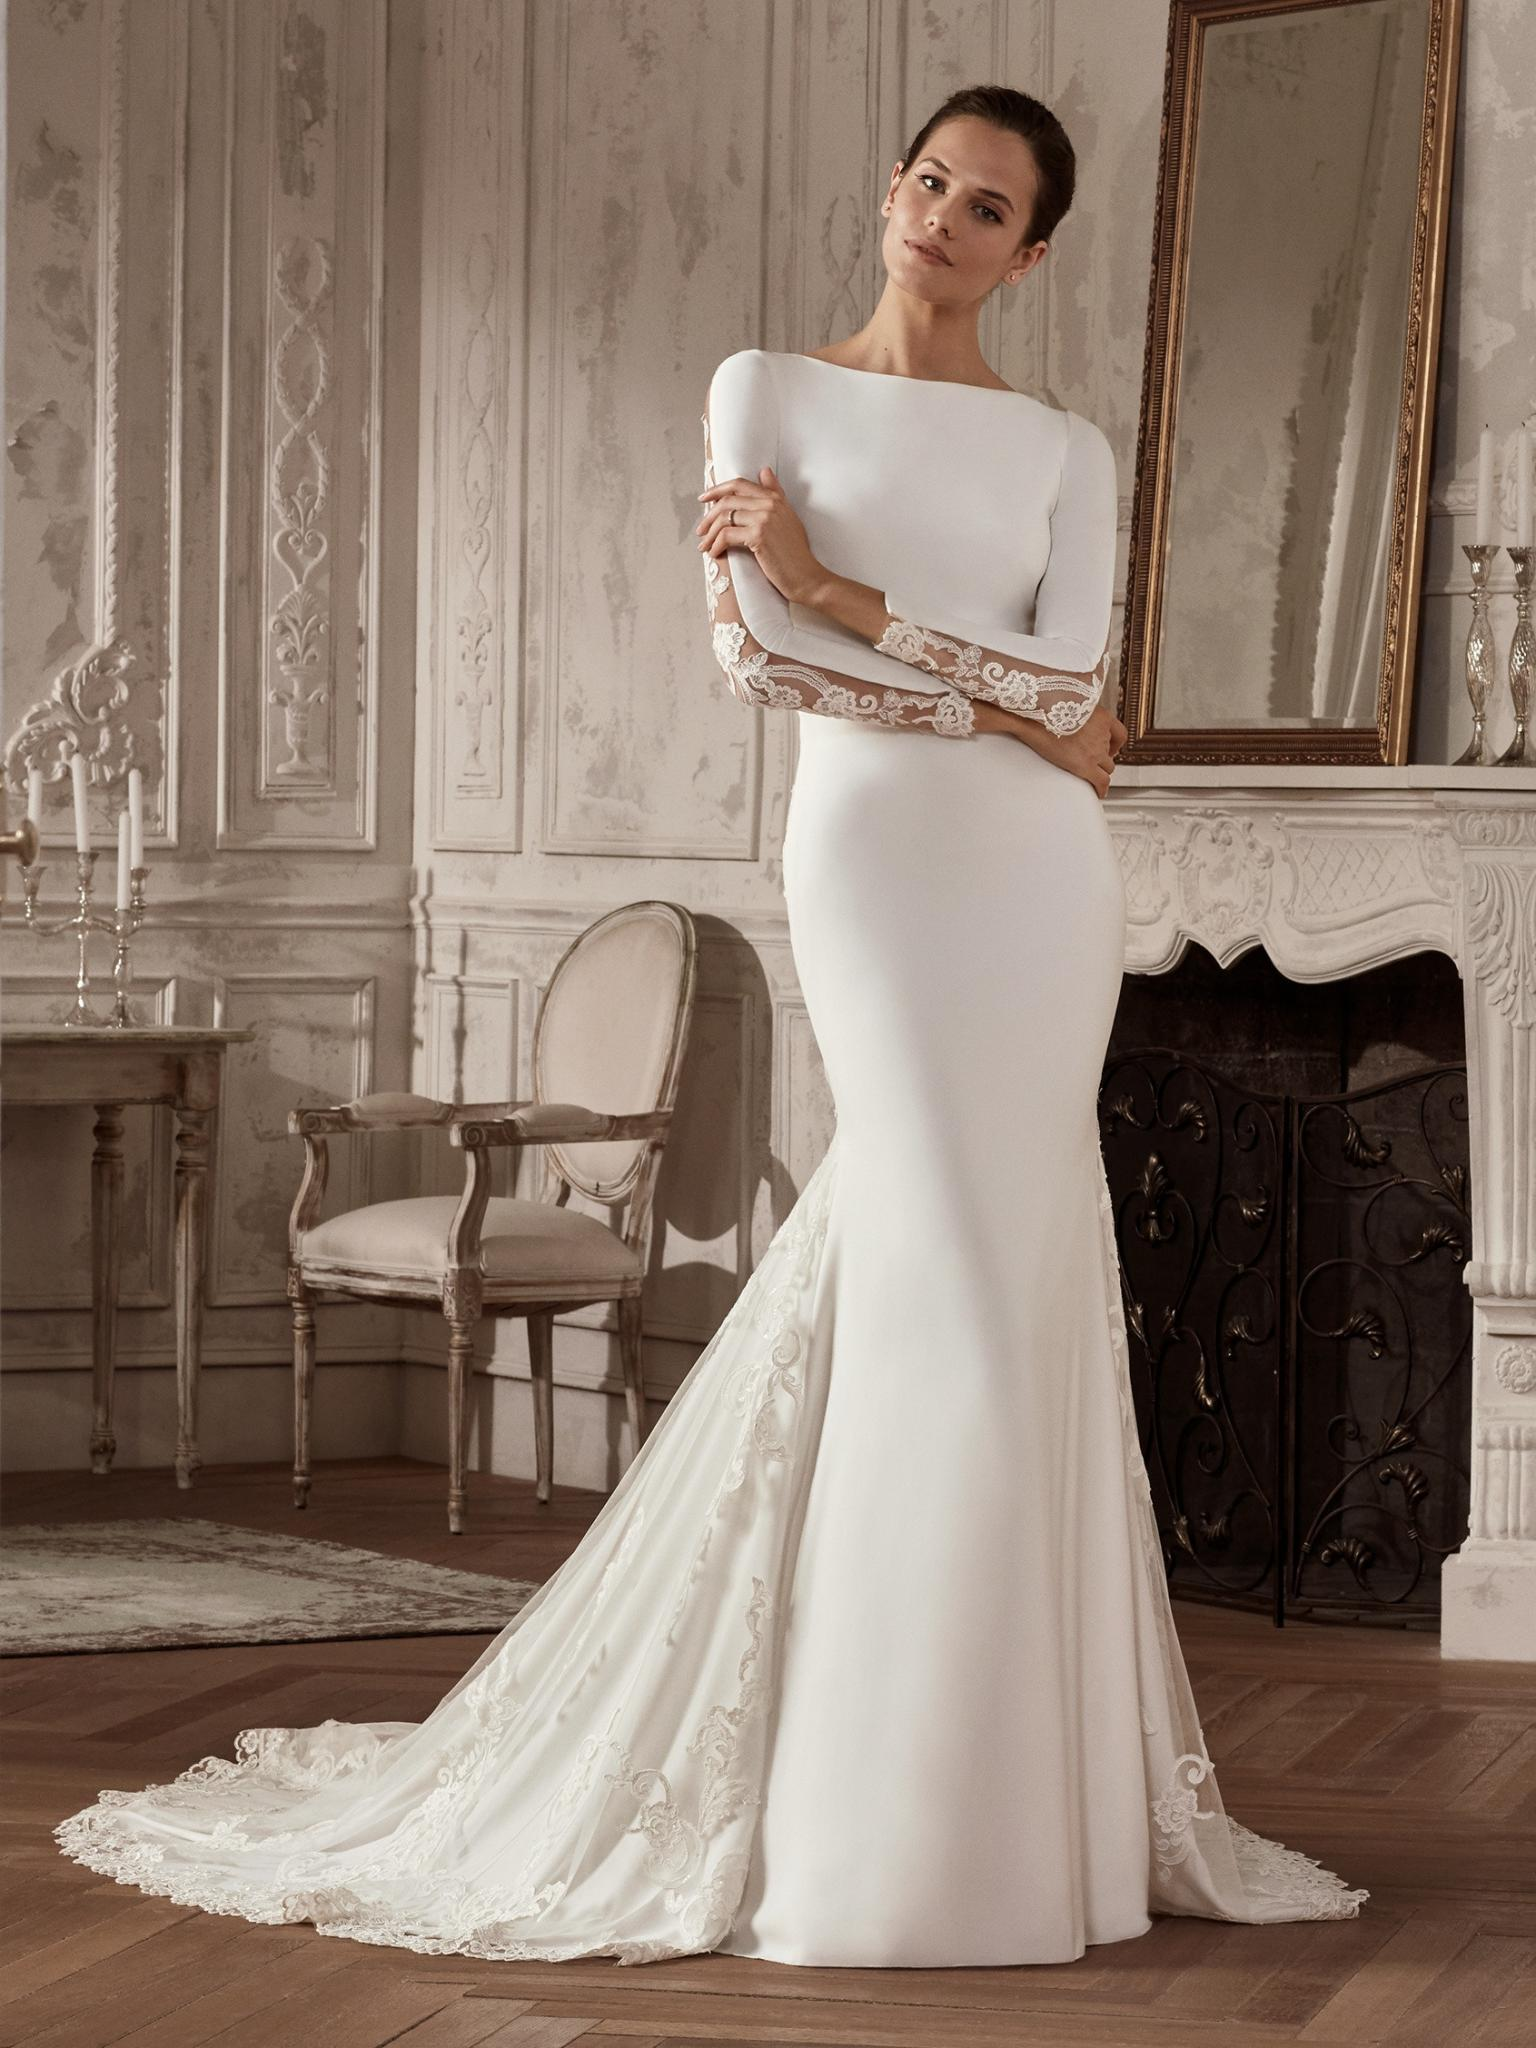 St Patrick abaco b - Vestidos de Noiva 2019 - Bridal Collection 2019